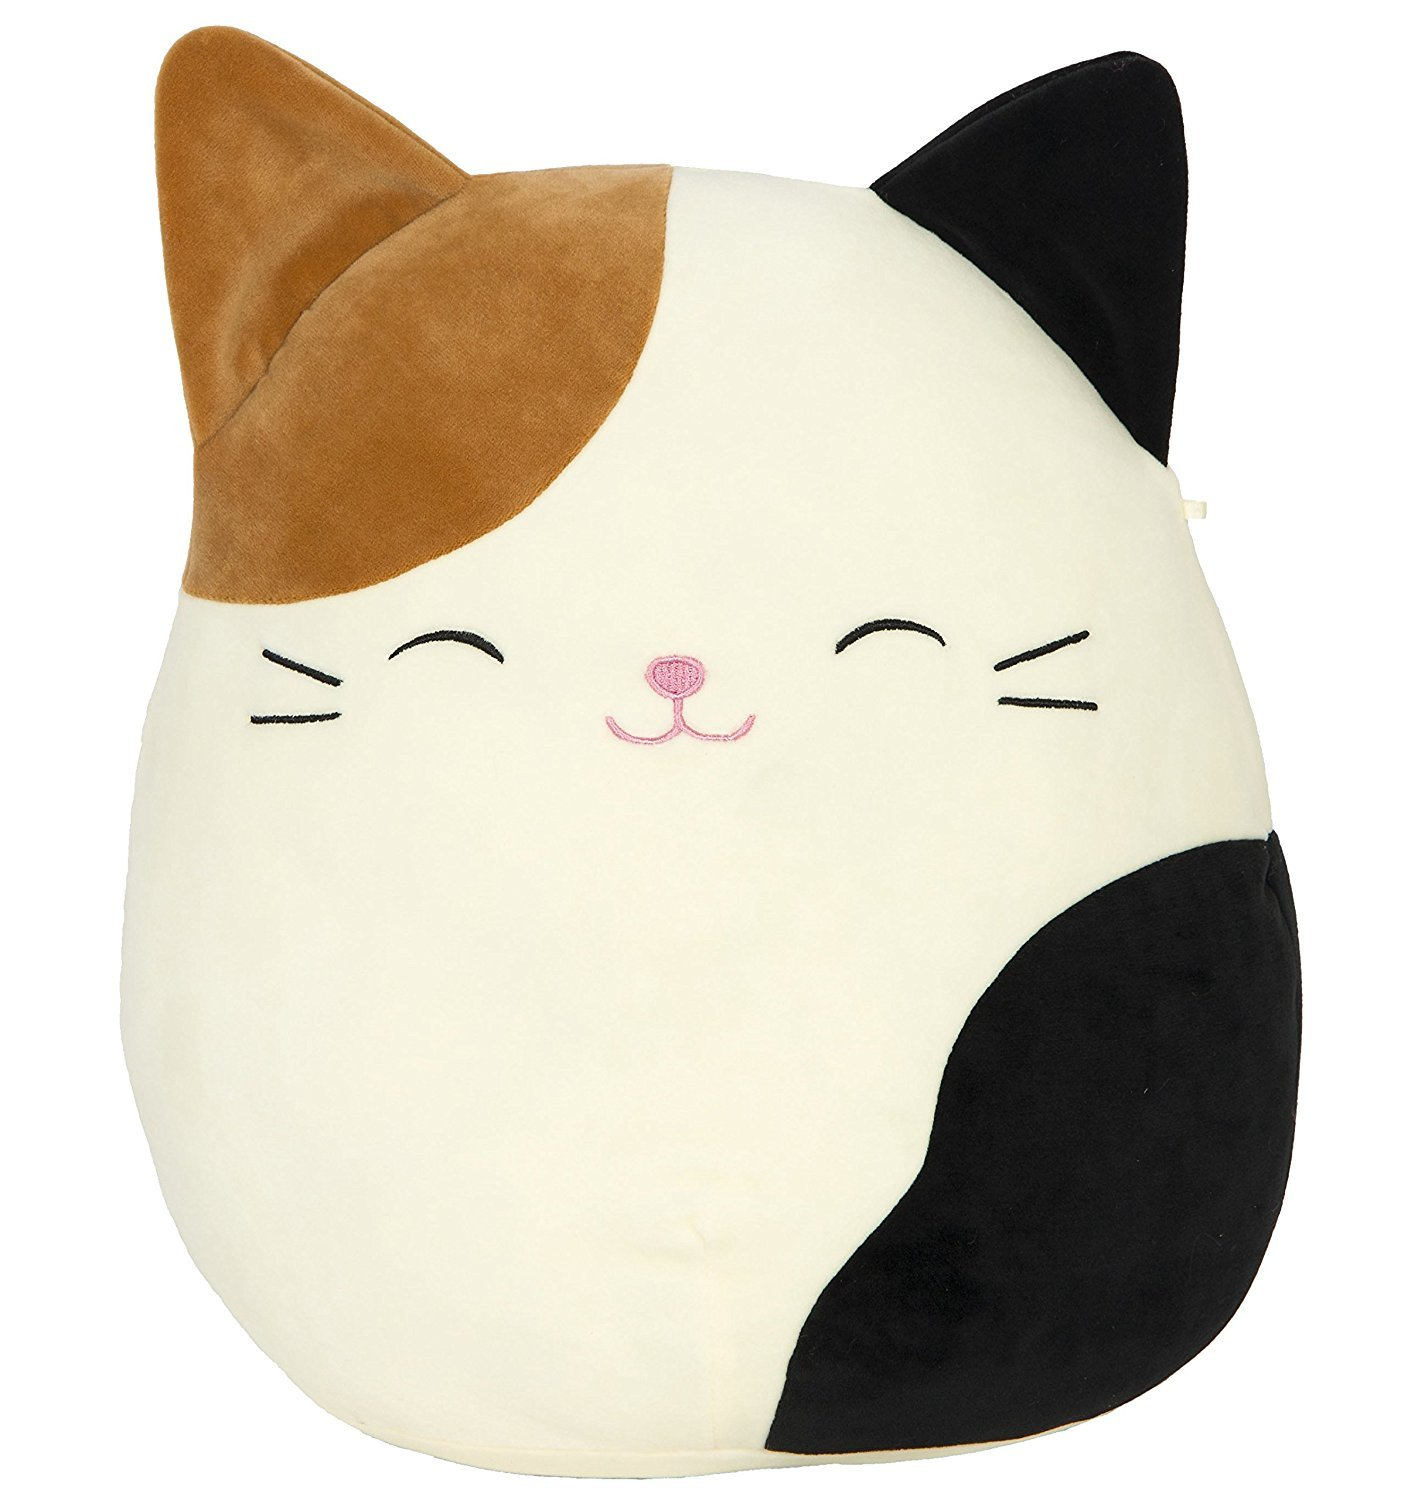 SQUISHMALLOW Cameron The Cat Pillow Stuffed Animal, Tricolor, 16''